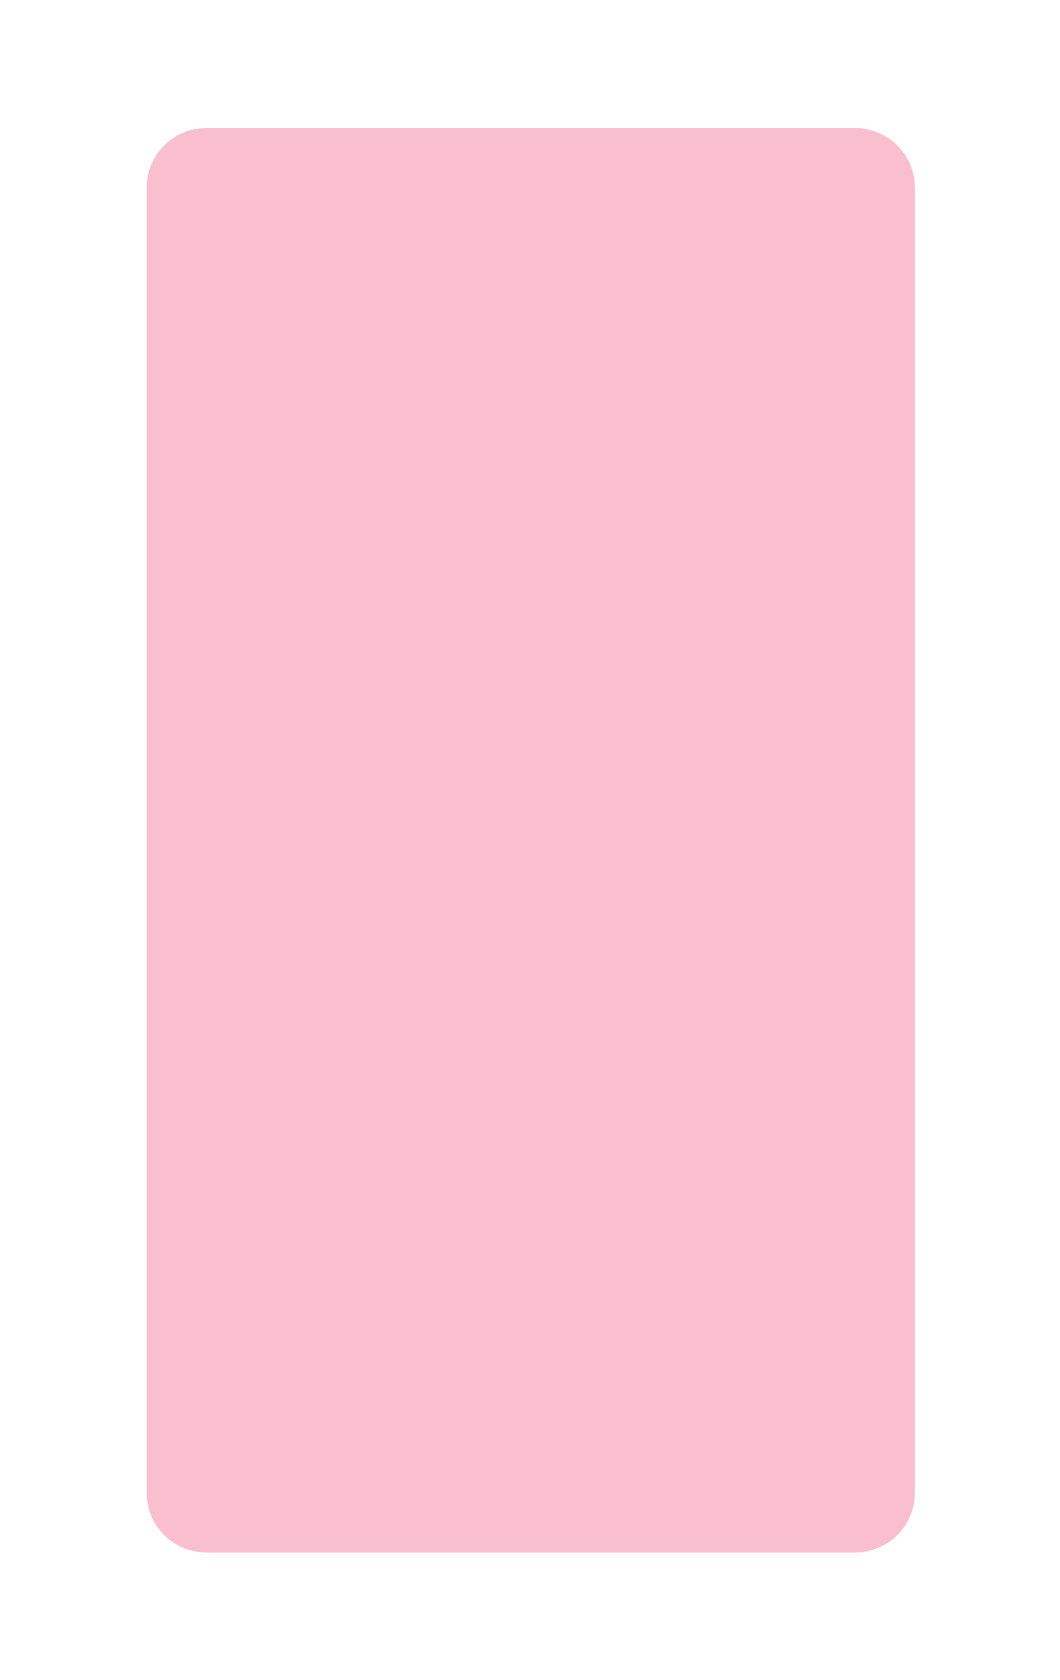 Light pink slider block image